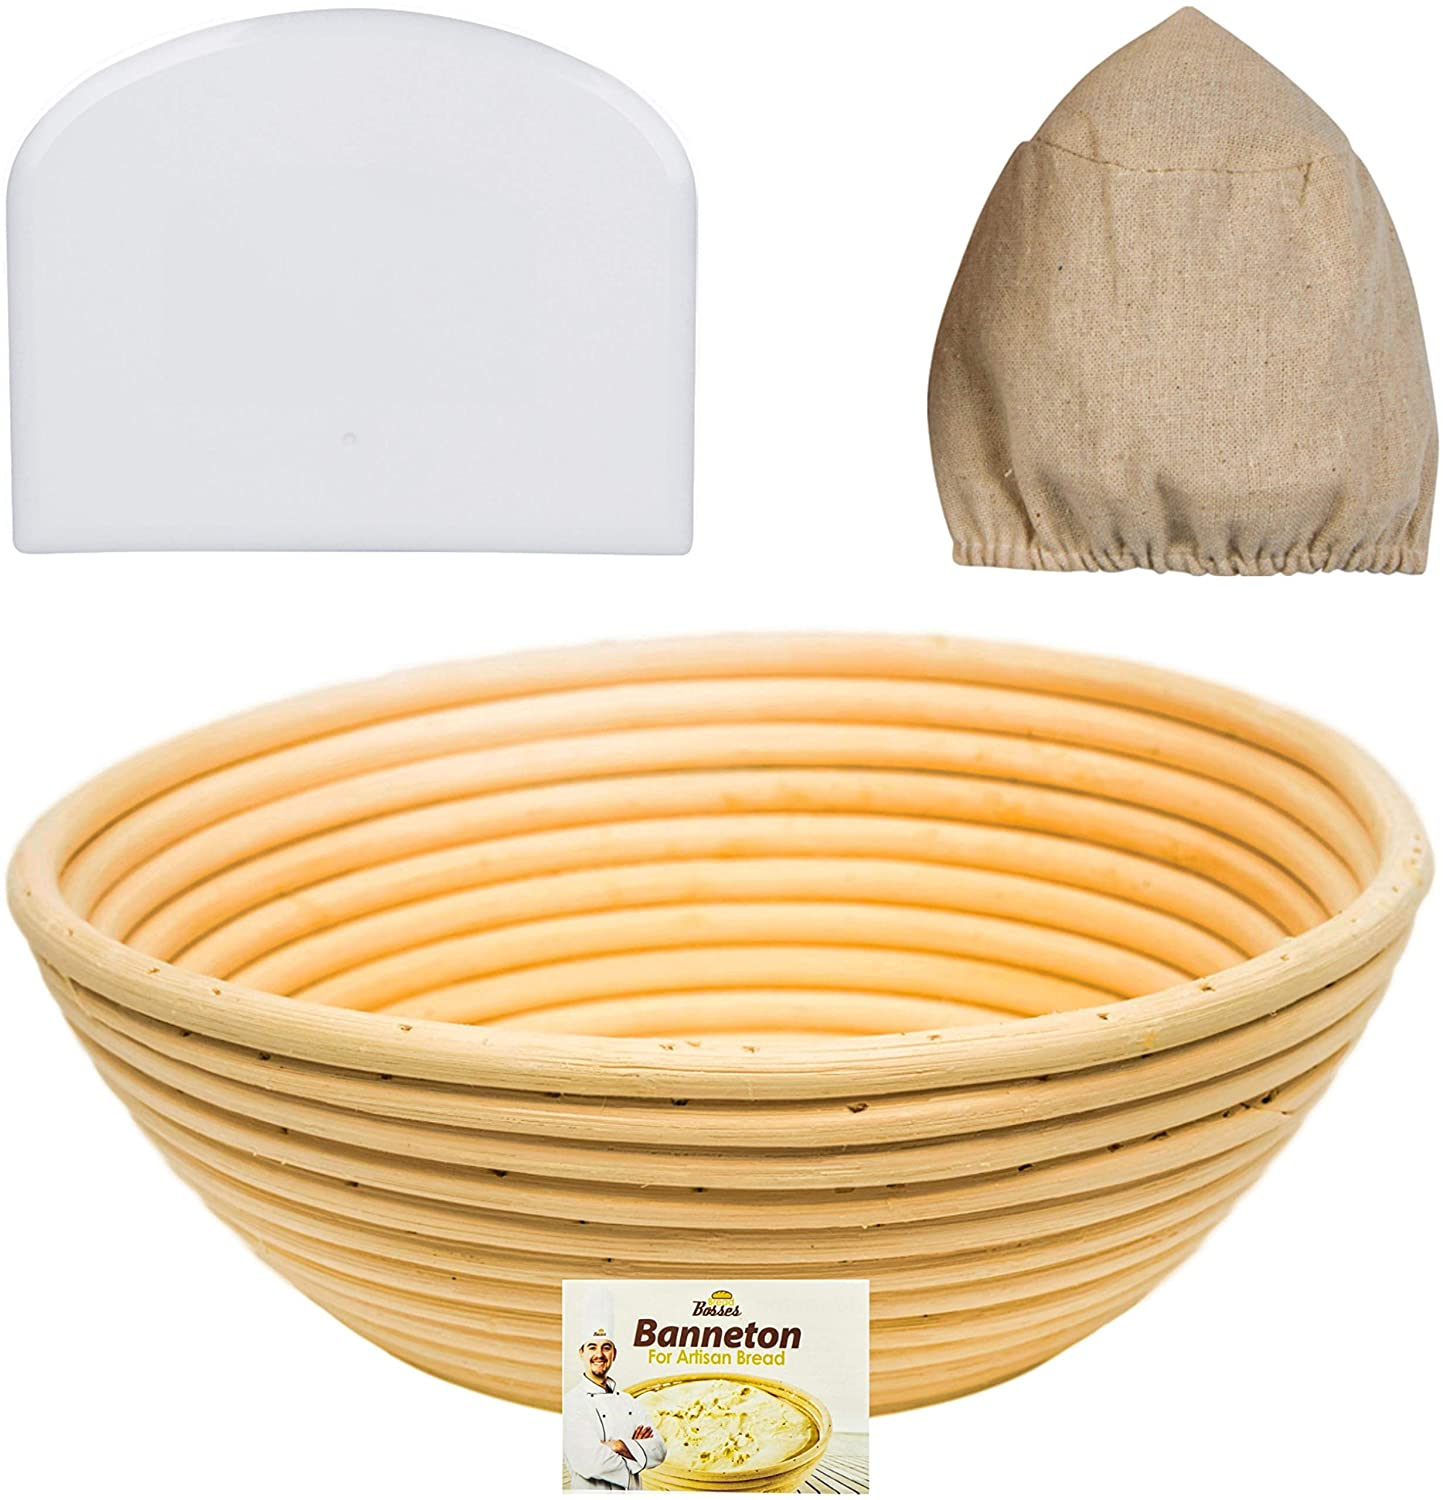 9 Inch Banneton Proofing Basket Set - for Professional and Home Bakers (Sourdough Recipe) Bowl Scraper and Brotform Cloth Liner for Rising Round Crispy Crust Baked Bread Making Dough Loaf Boules Bread Bosses